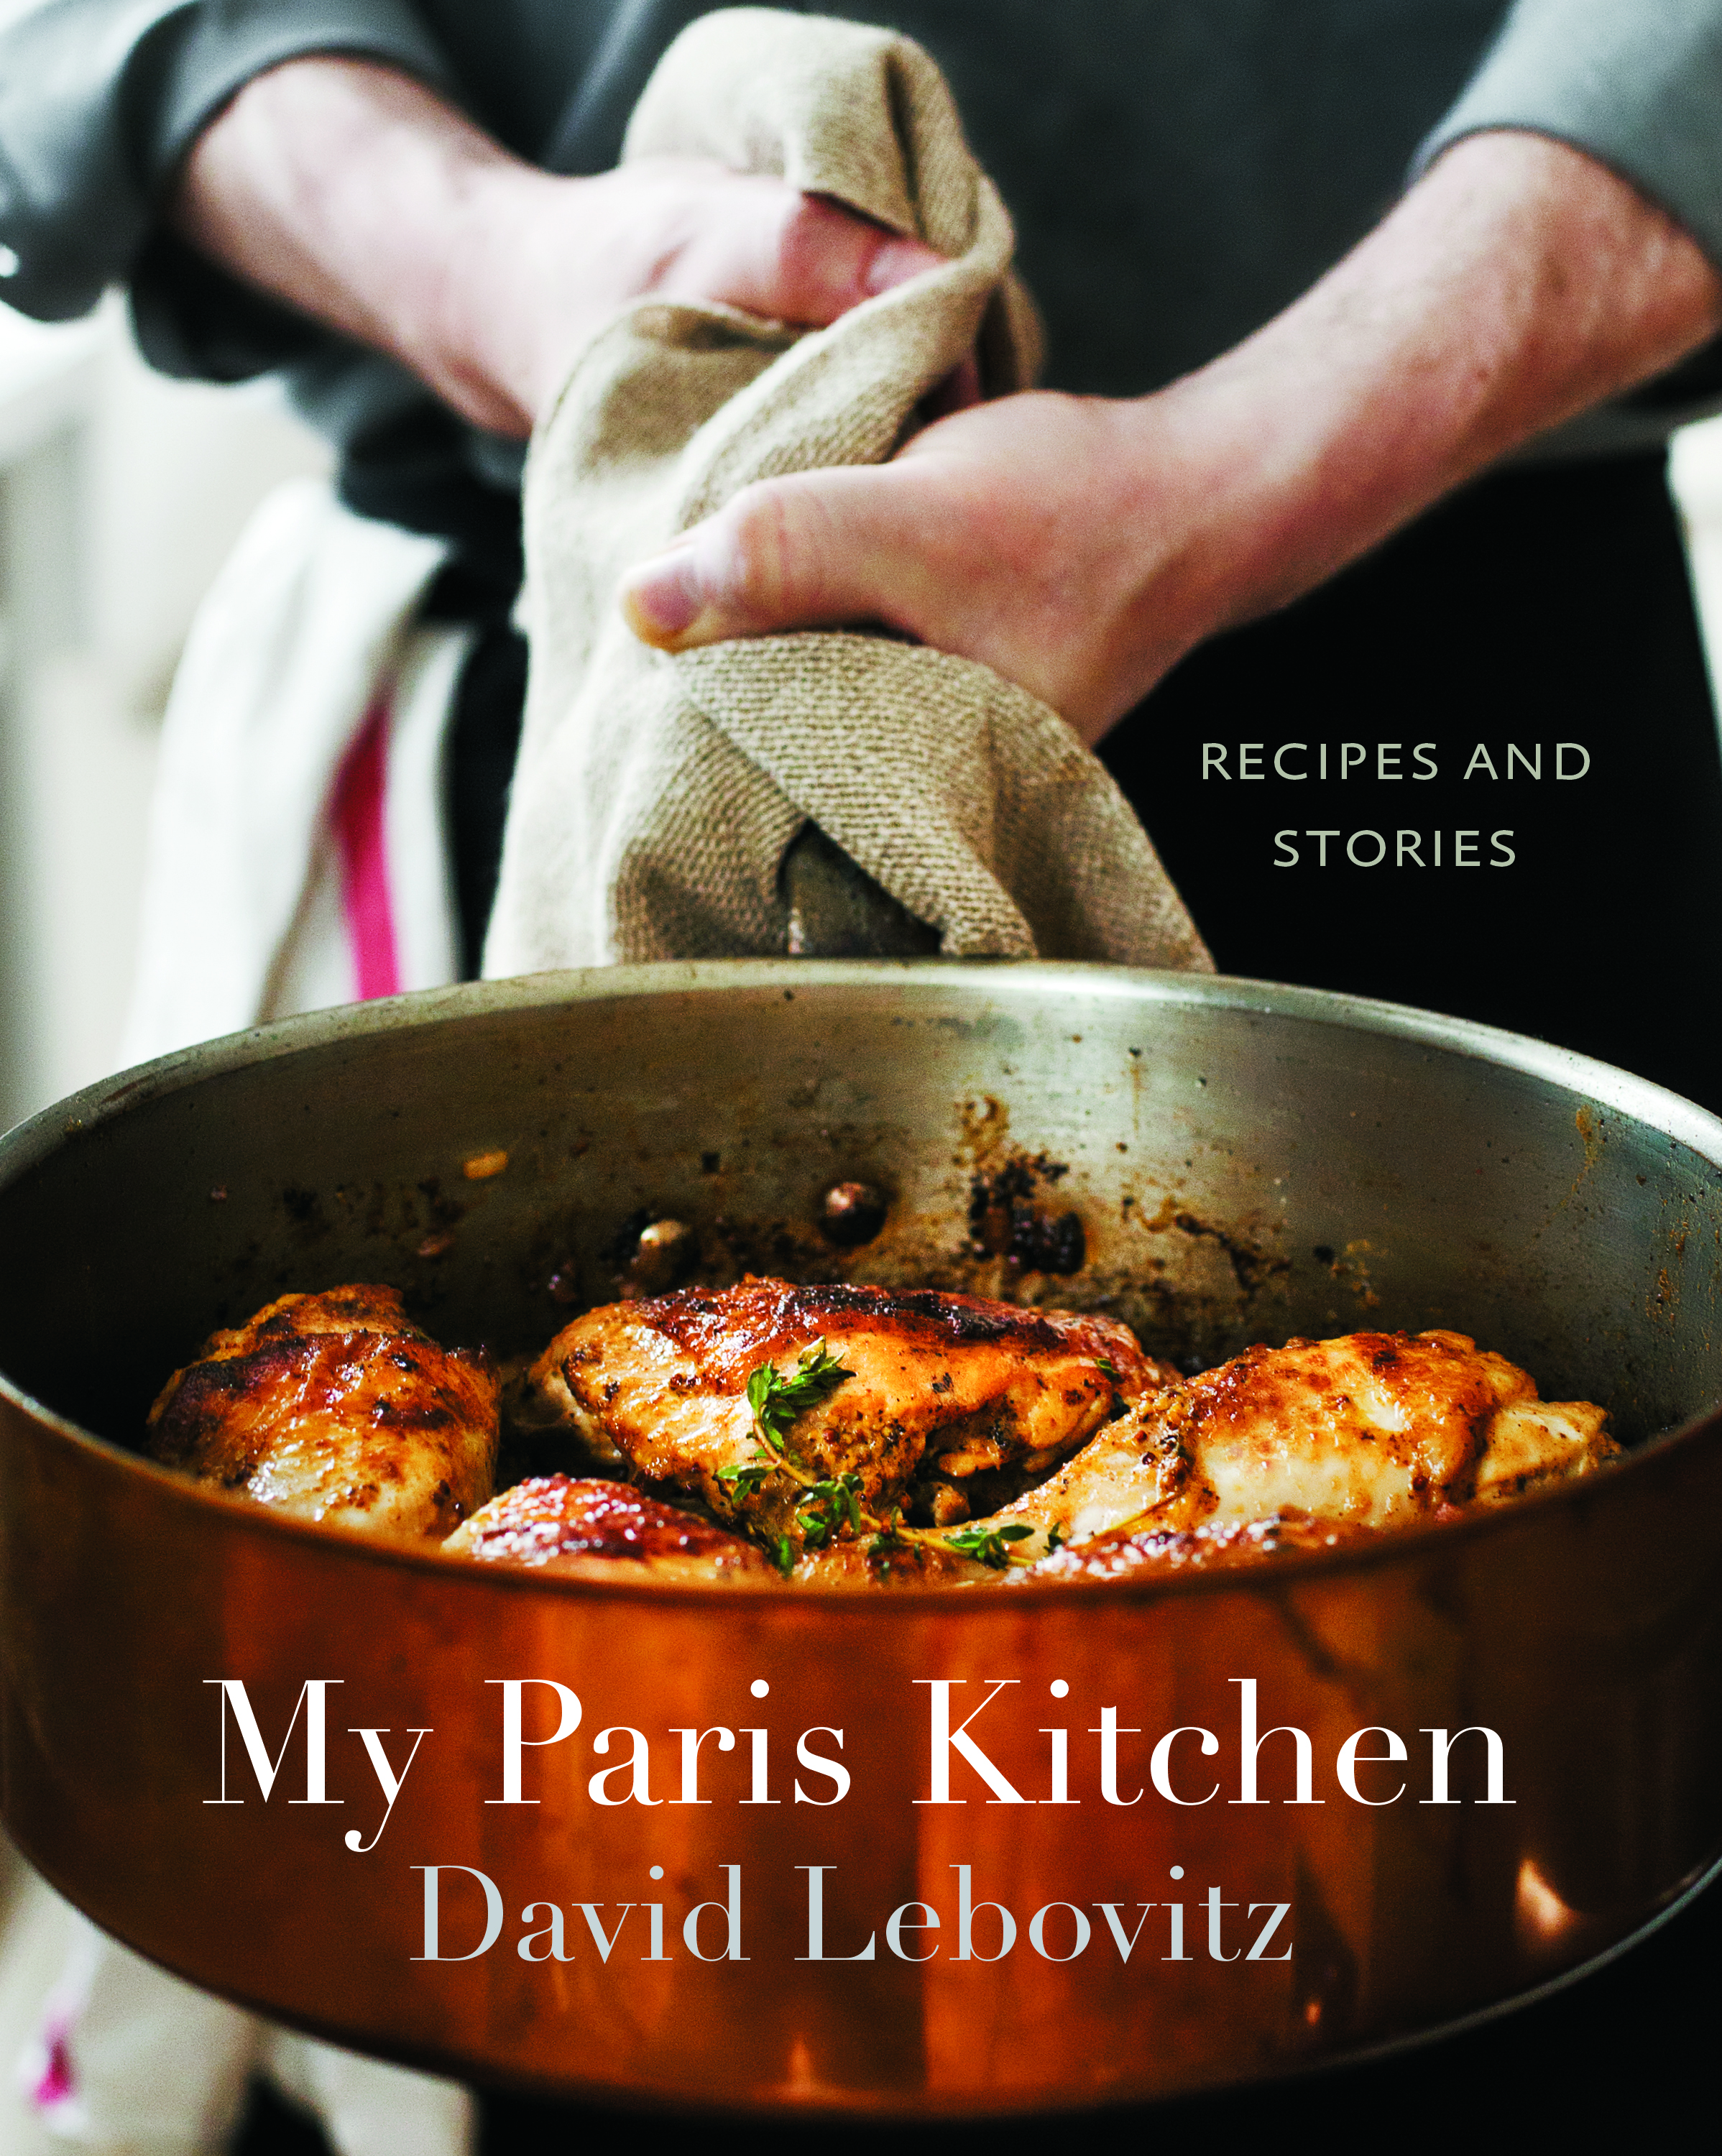 David Lebovitz cookbooks